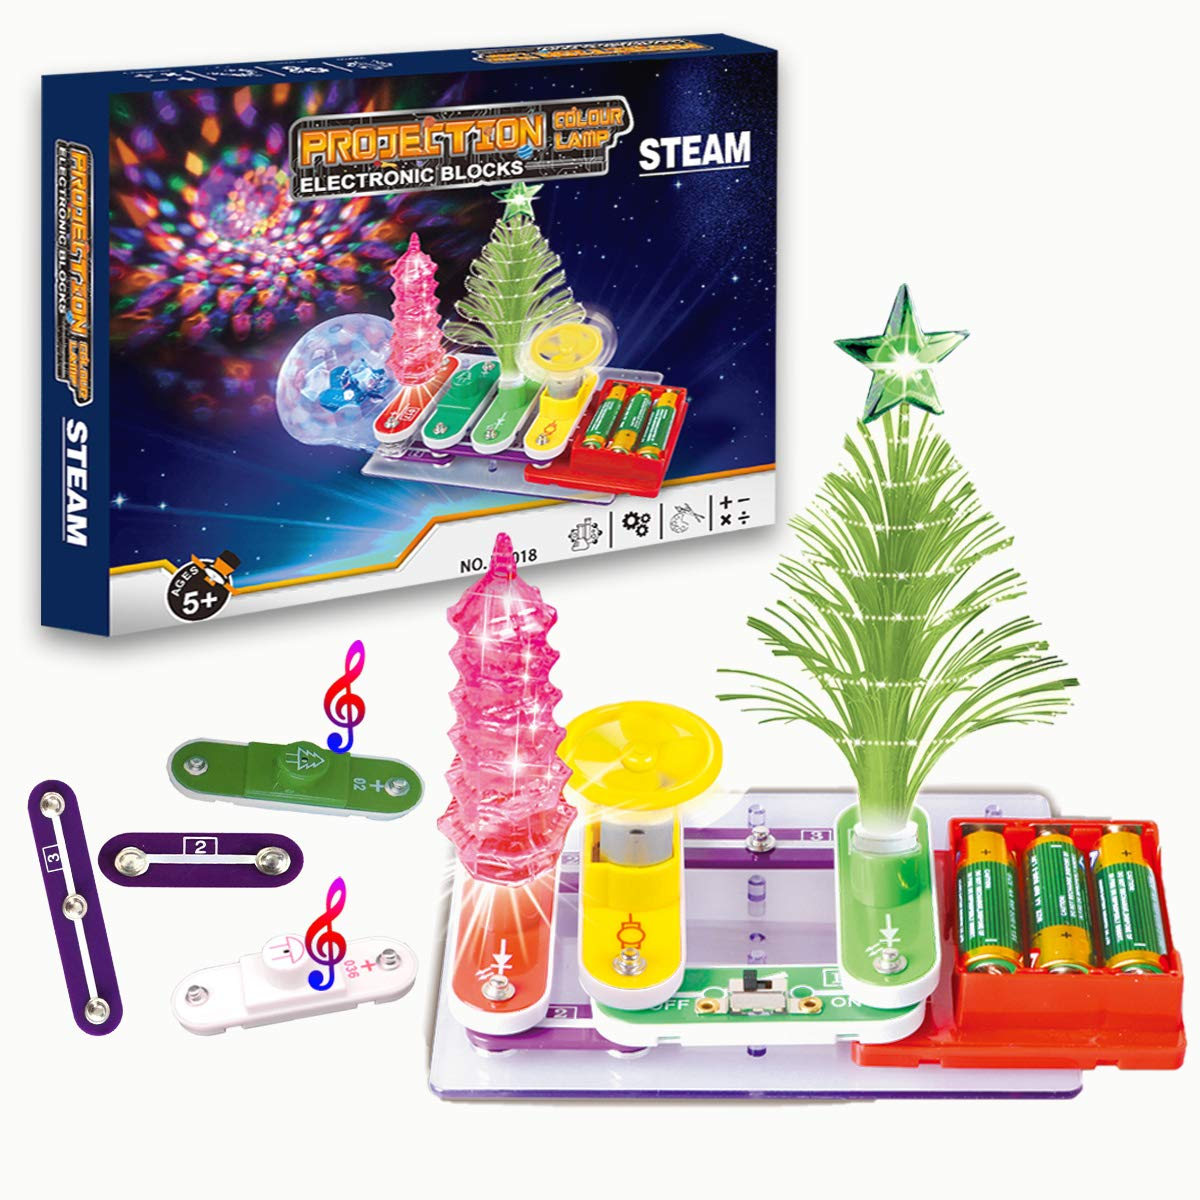 Yileqi Kids Electronics Experiment Kit with Full Color Project Manual, Over 64 Exciting Projects 17+ Circuits Snap Parts, Activities STEM Toys Educational Gift Science Kit for Boys Girls 5 6 7 8 9 10